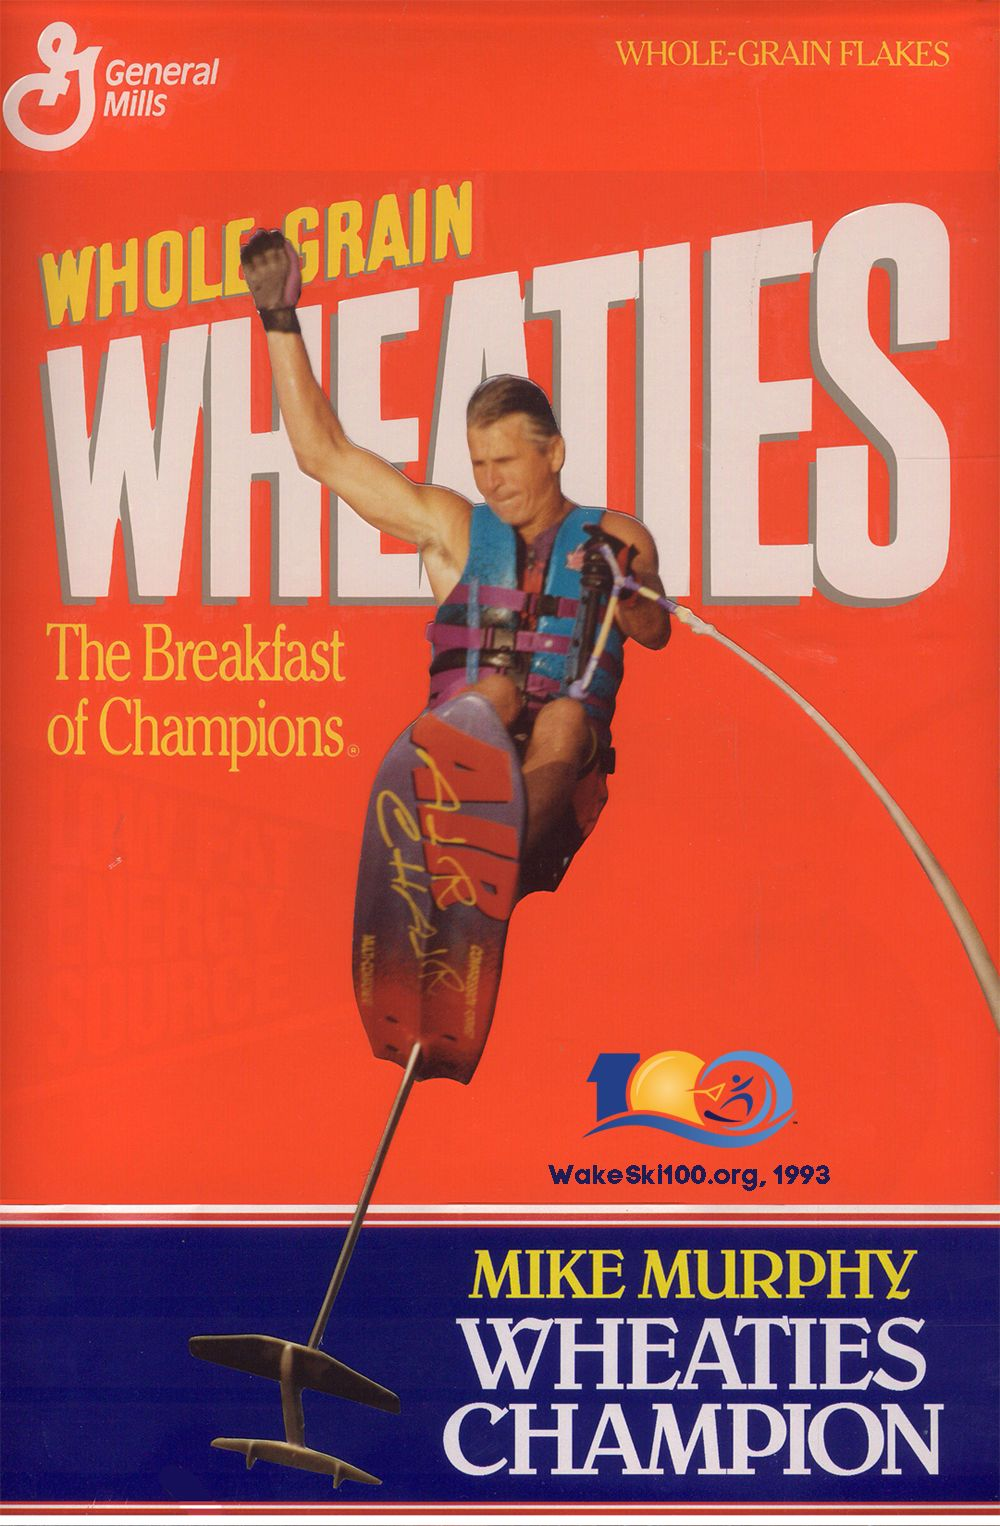 Mike Murphy received a personalized Wheaties box from